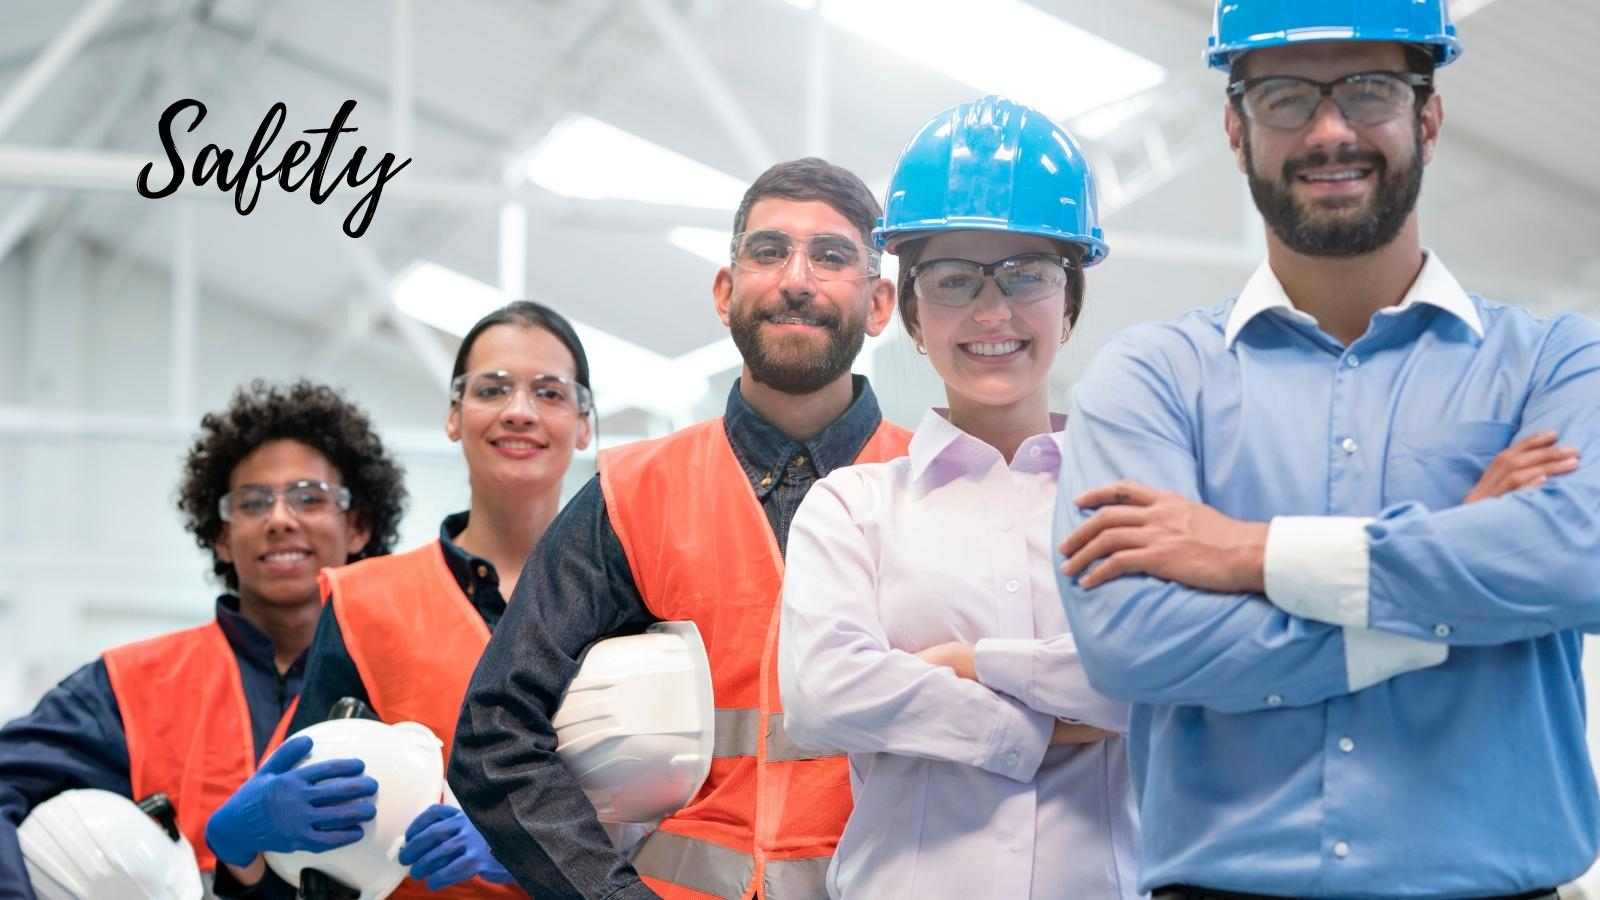 safety to make your business better for your employees